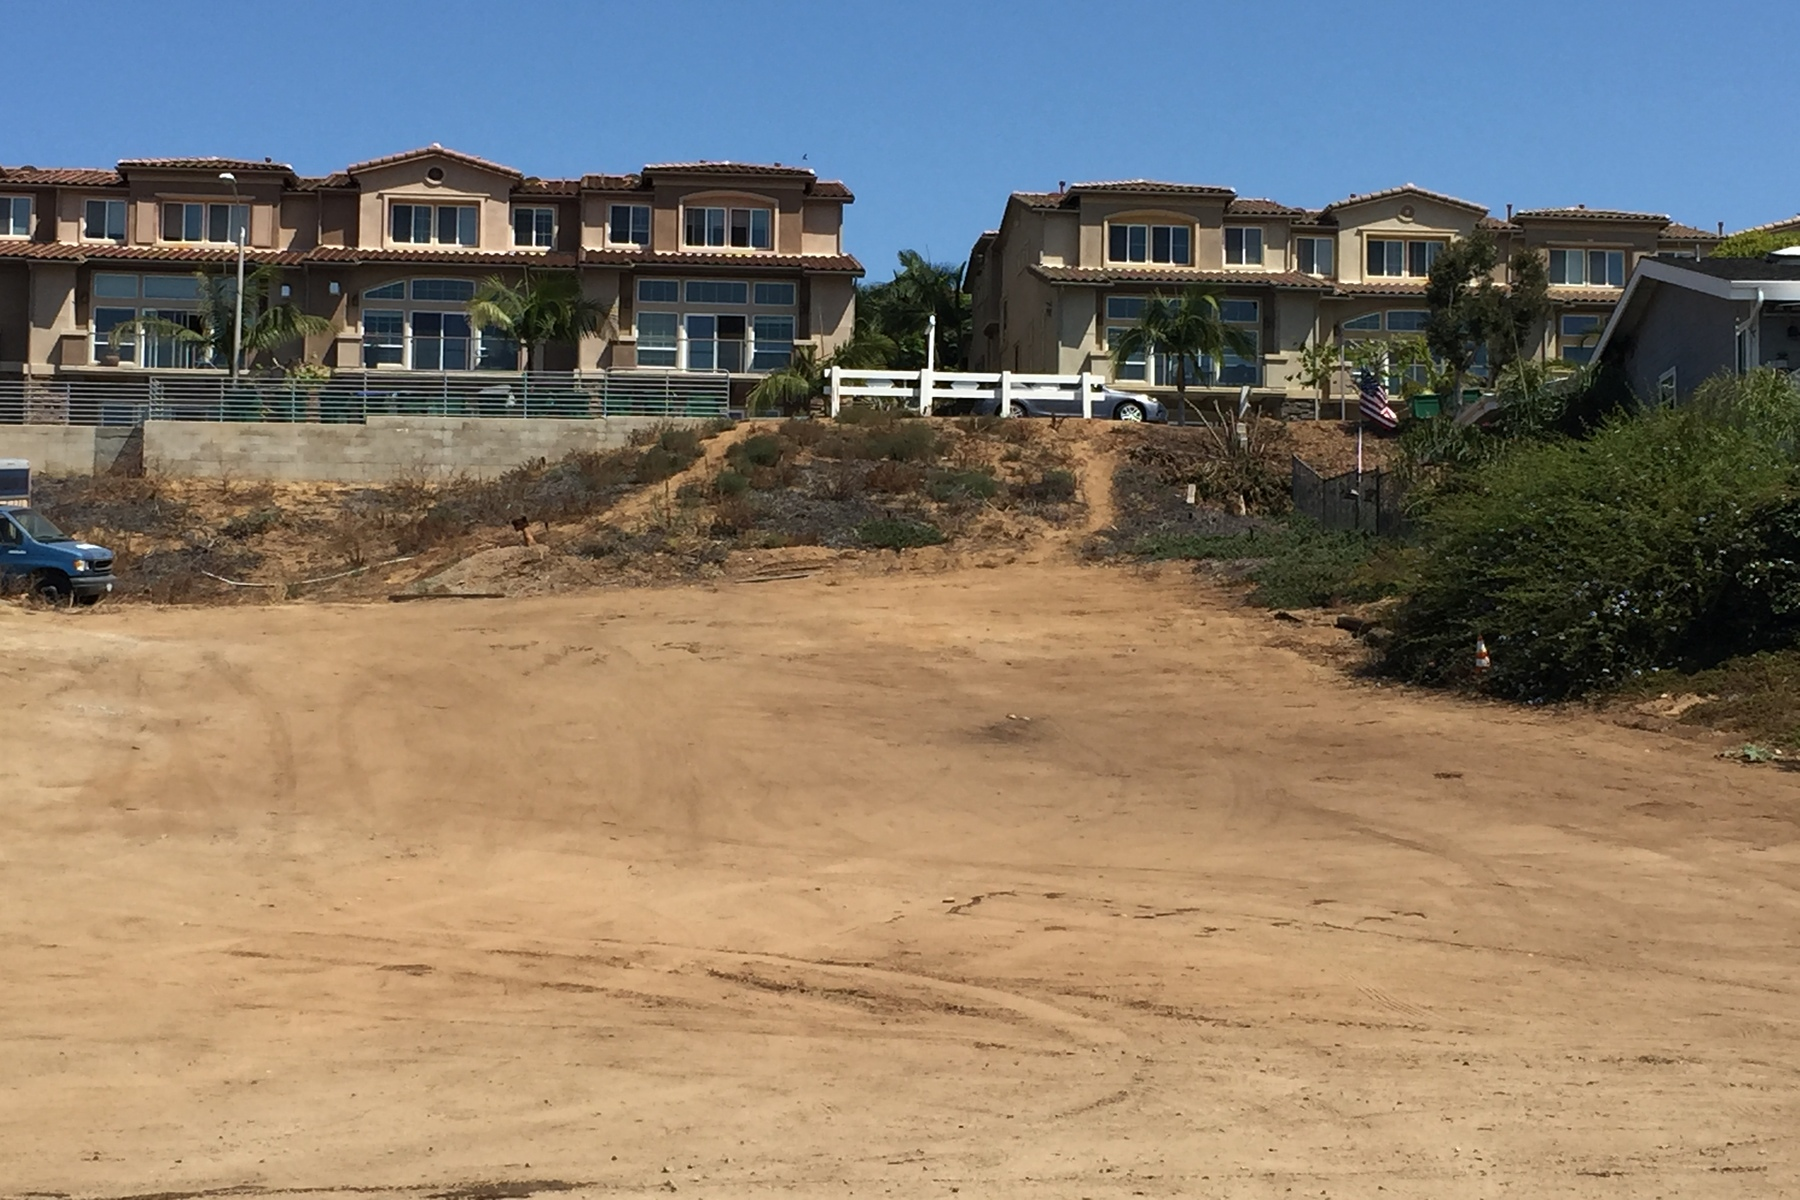 Additional photo for property listing at LOT Harrison Street Lot 11  Carlsbad, California 92008 United States